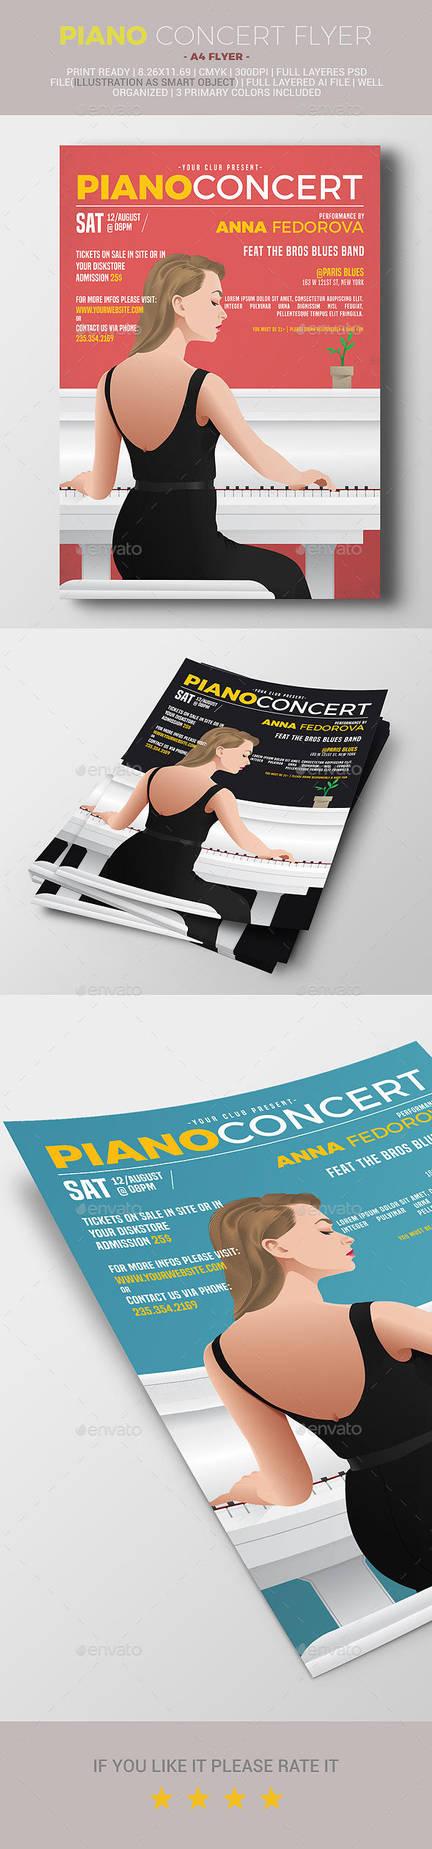 Piano concert flyer by firmacomdesign